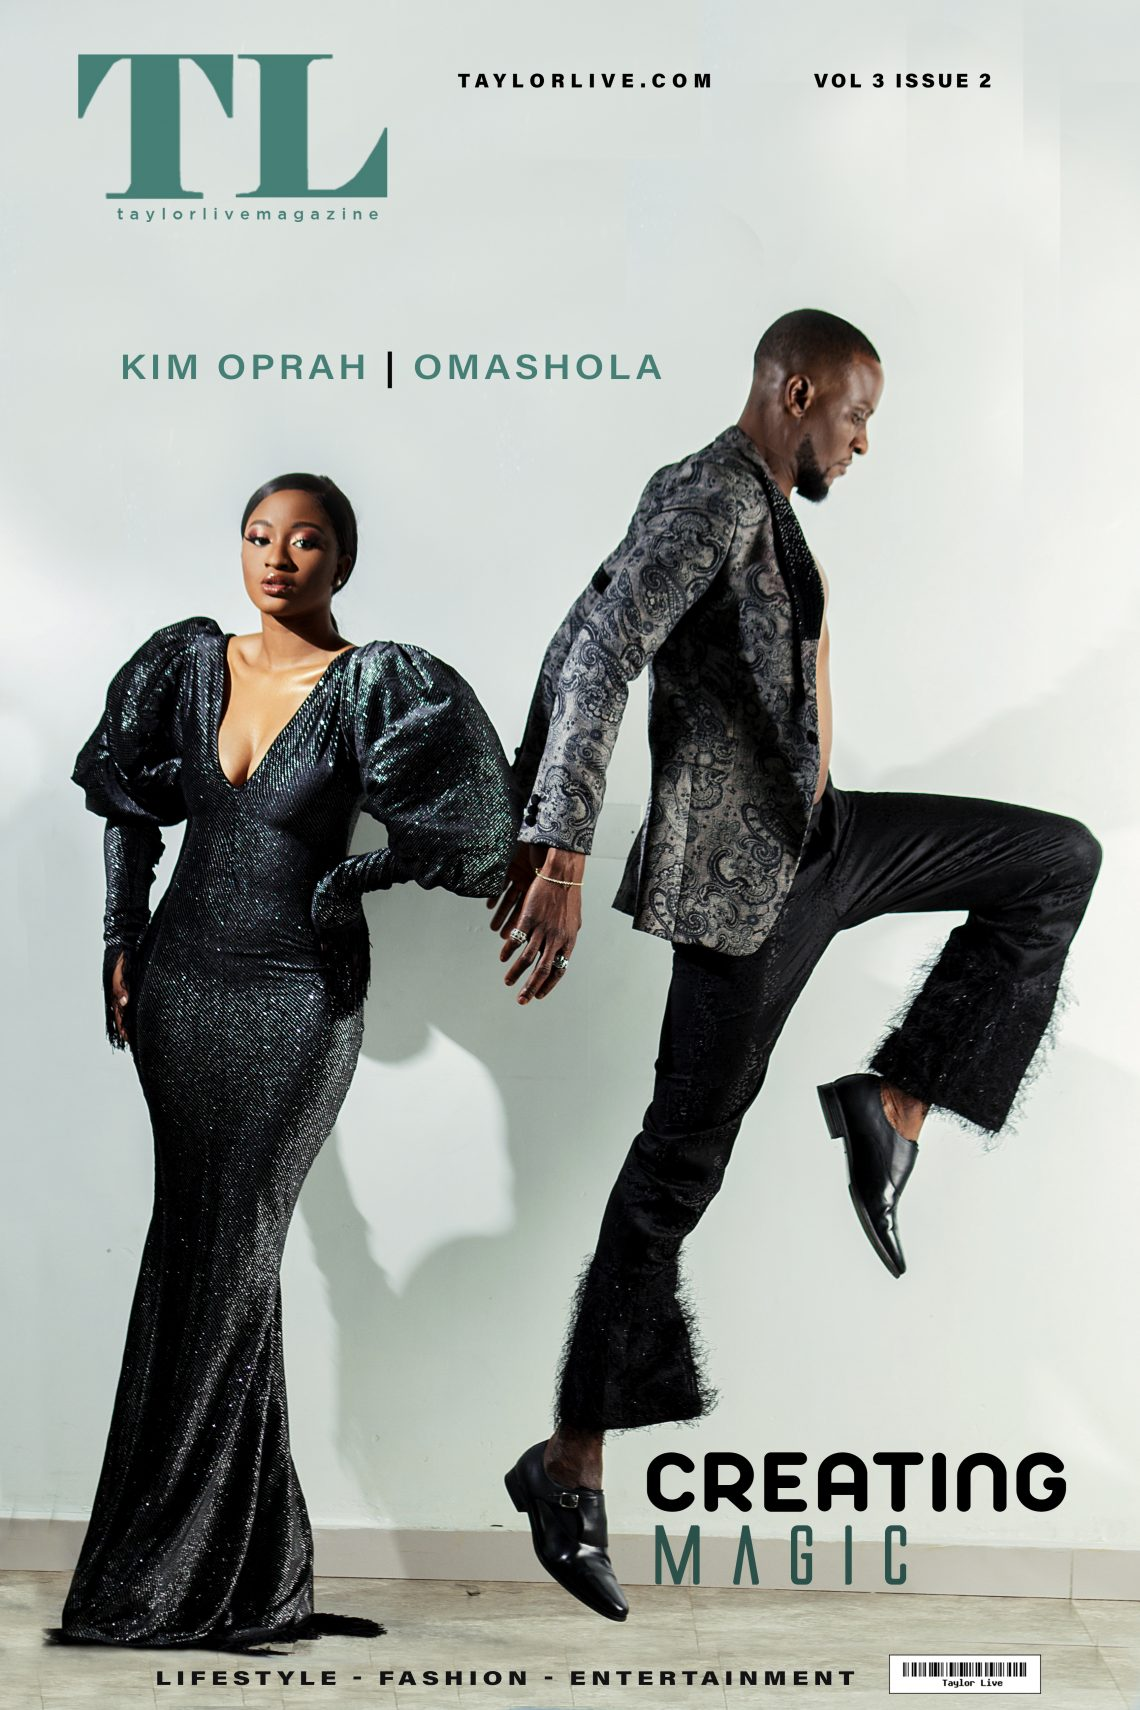 Creating Magic – Kim Oprah & Omashola Covers Taylor Live Magazine's Latest Issue